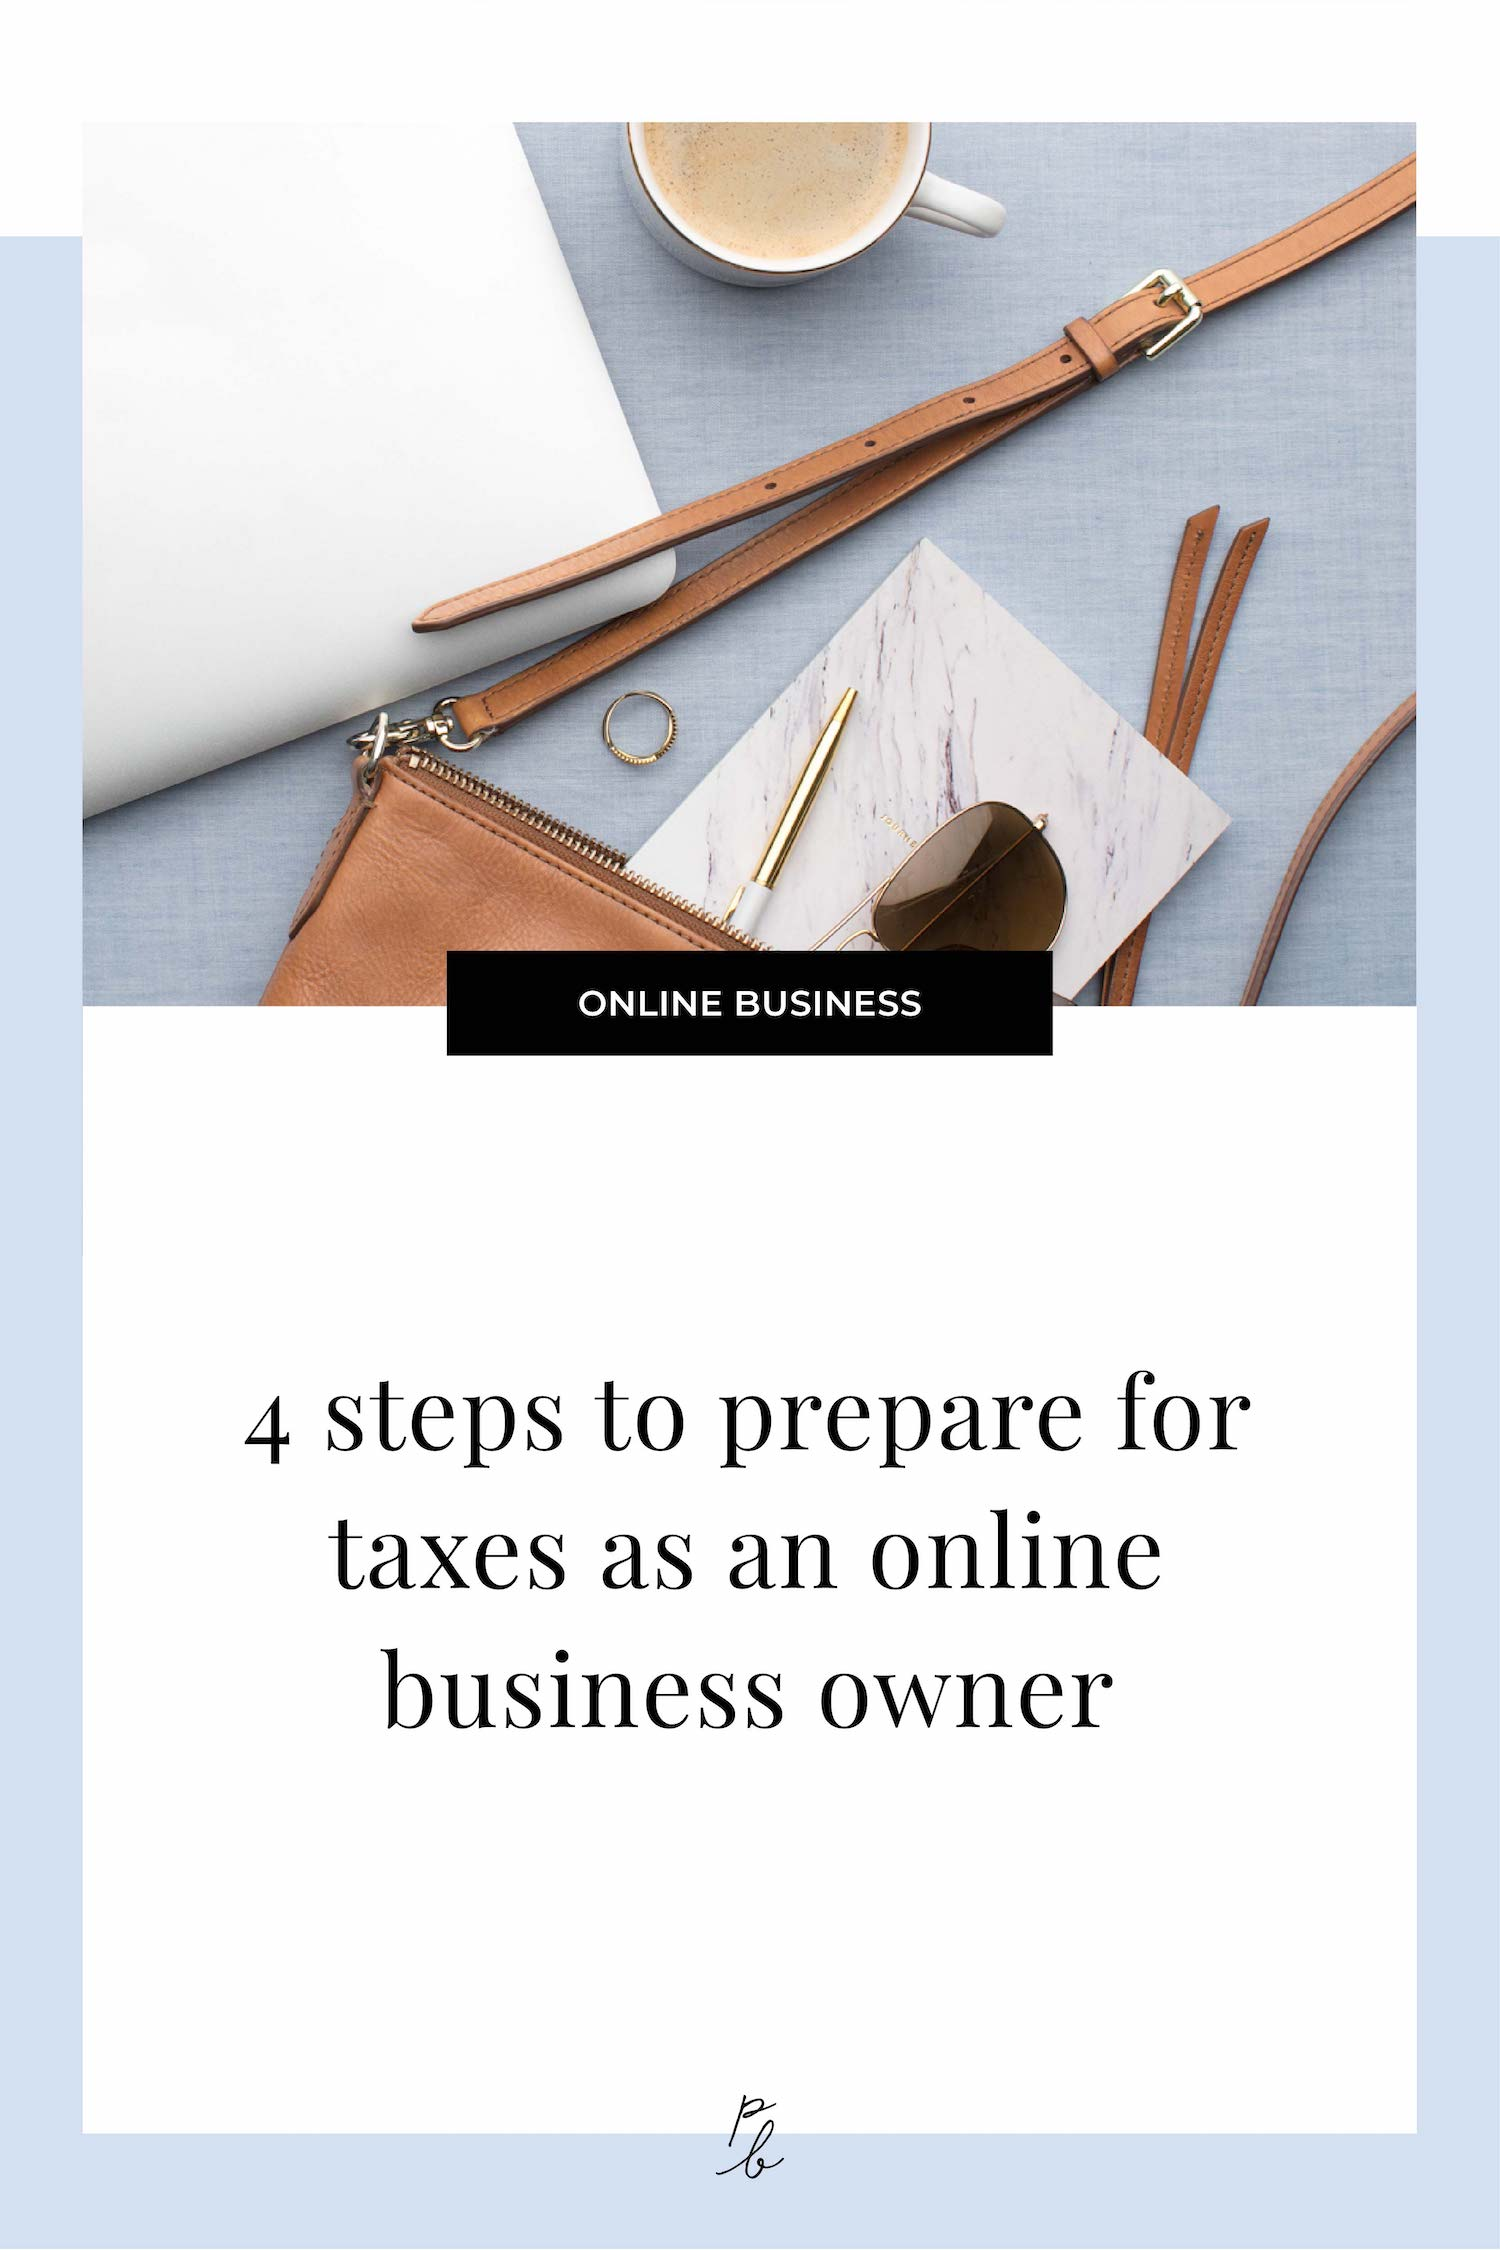 4 steps to prepare for taxes as an online business owner.jpg